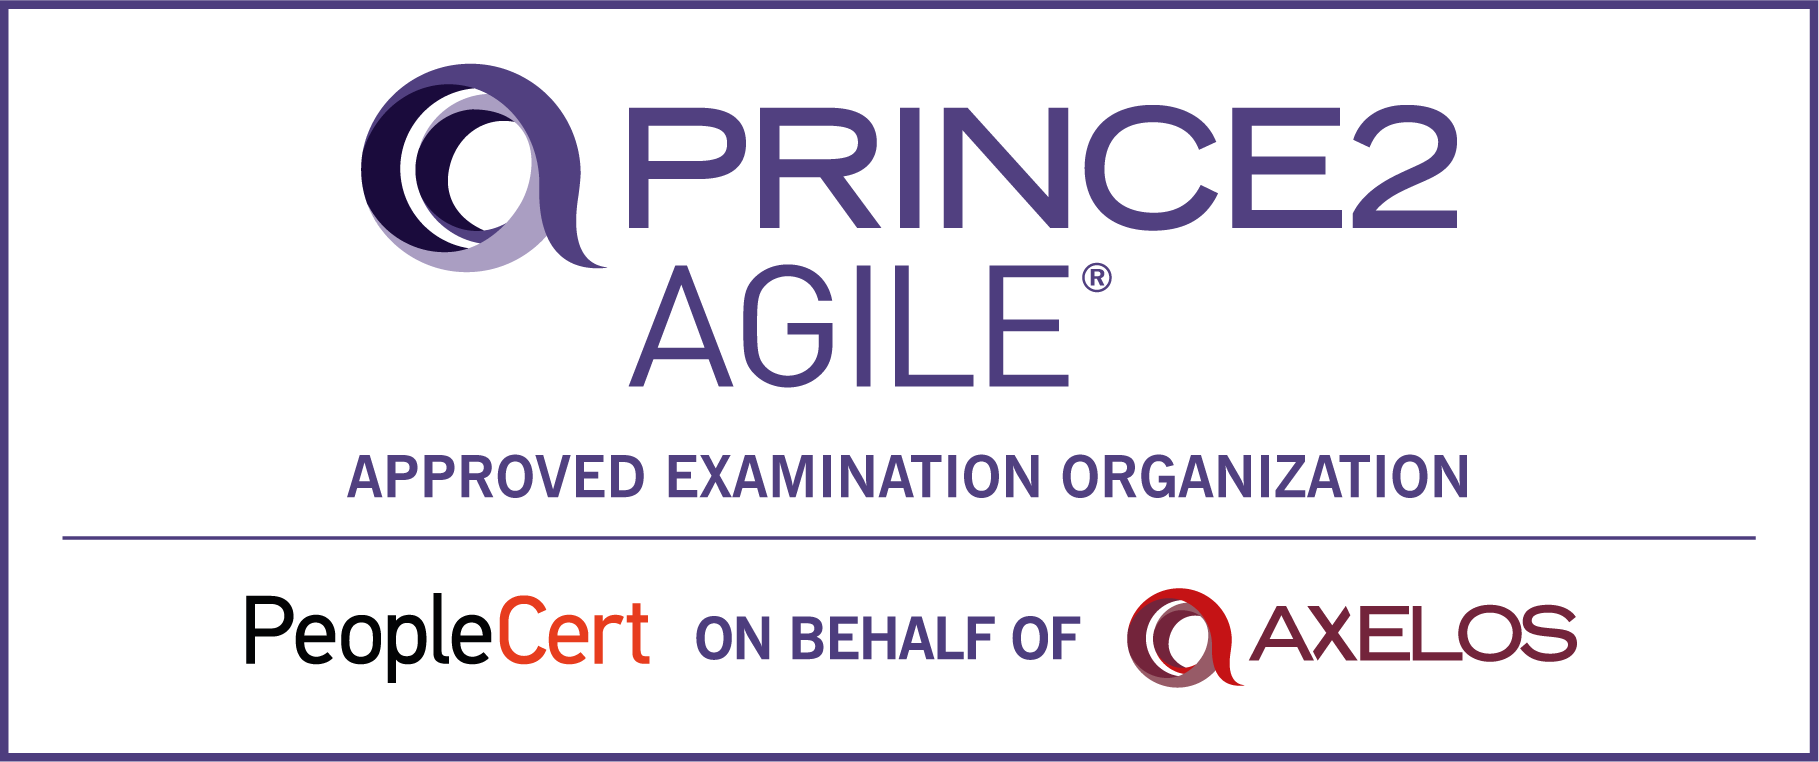 formation prince2 agile